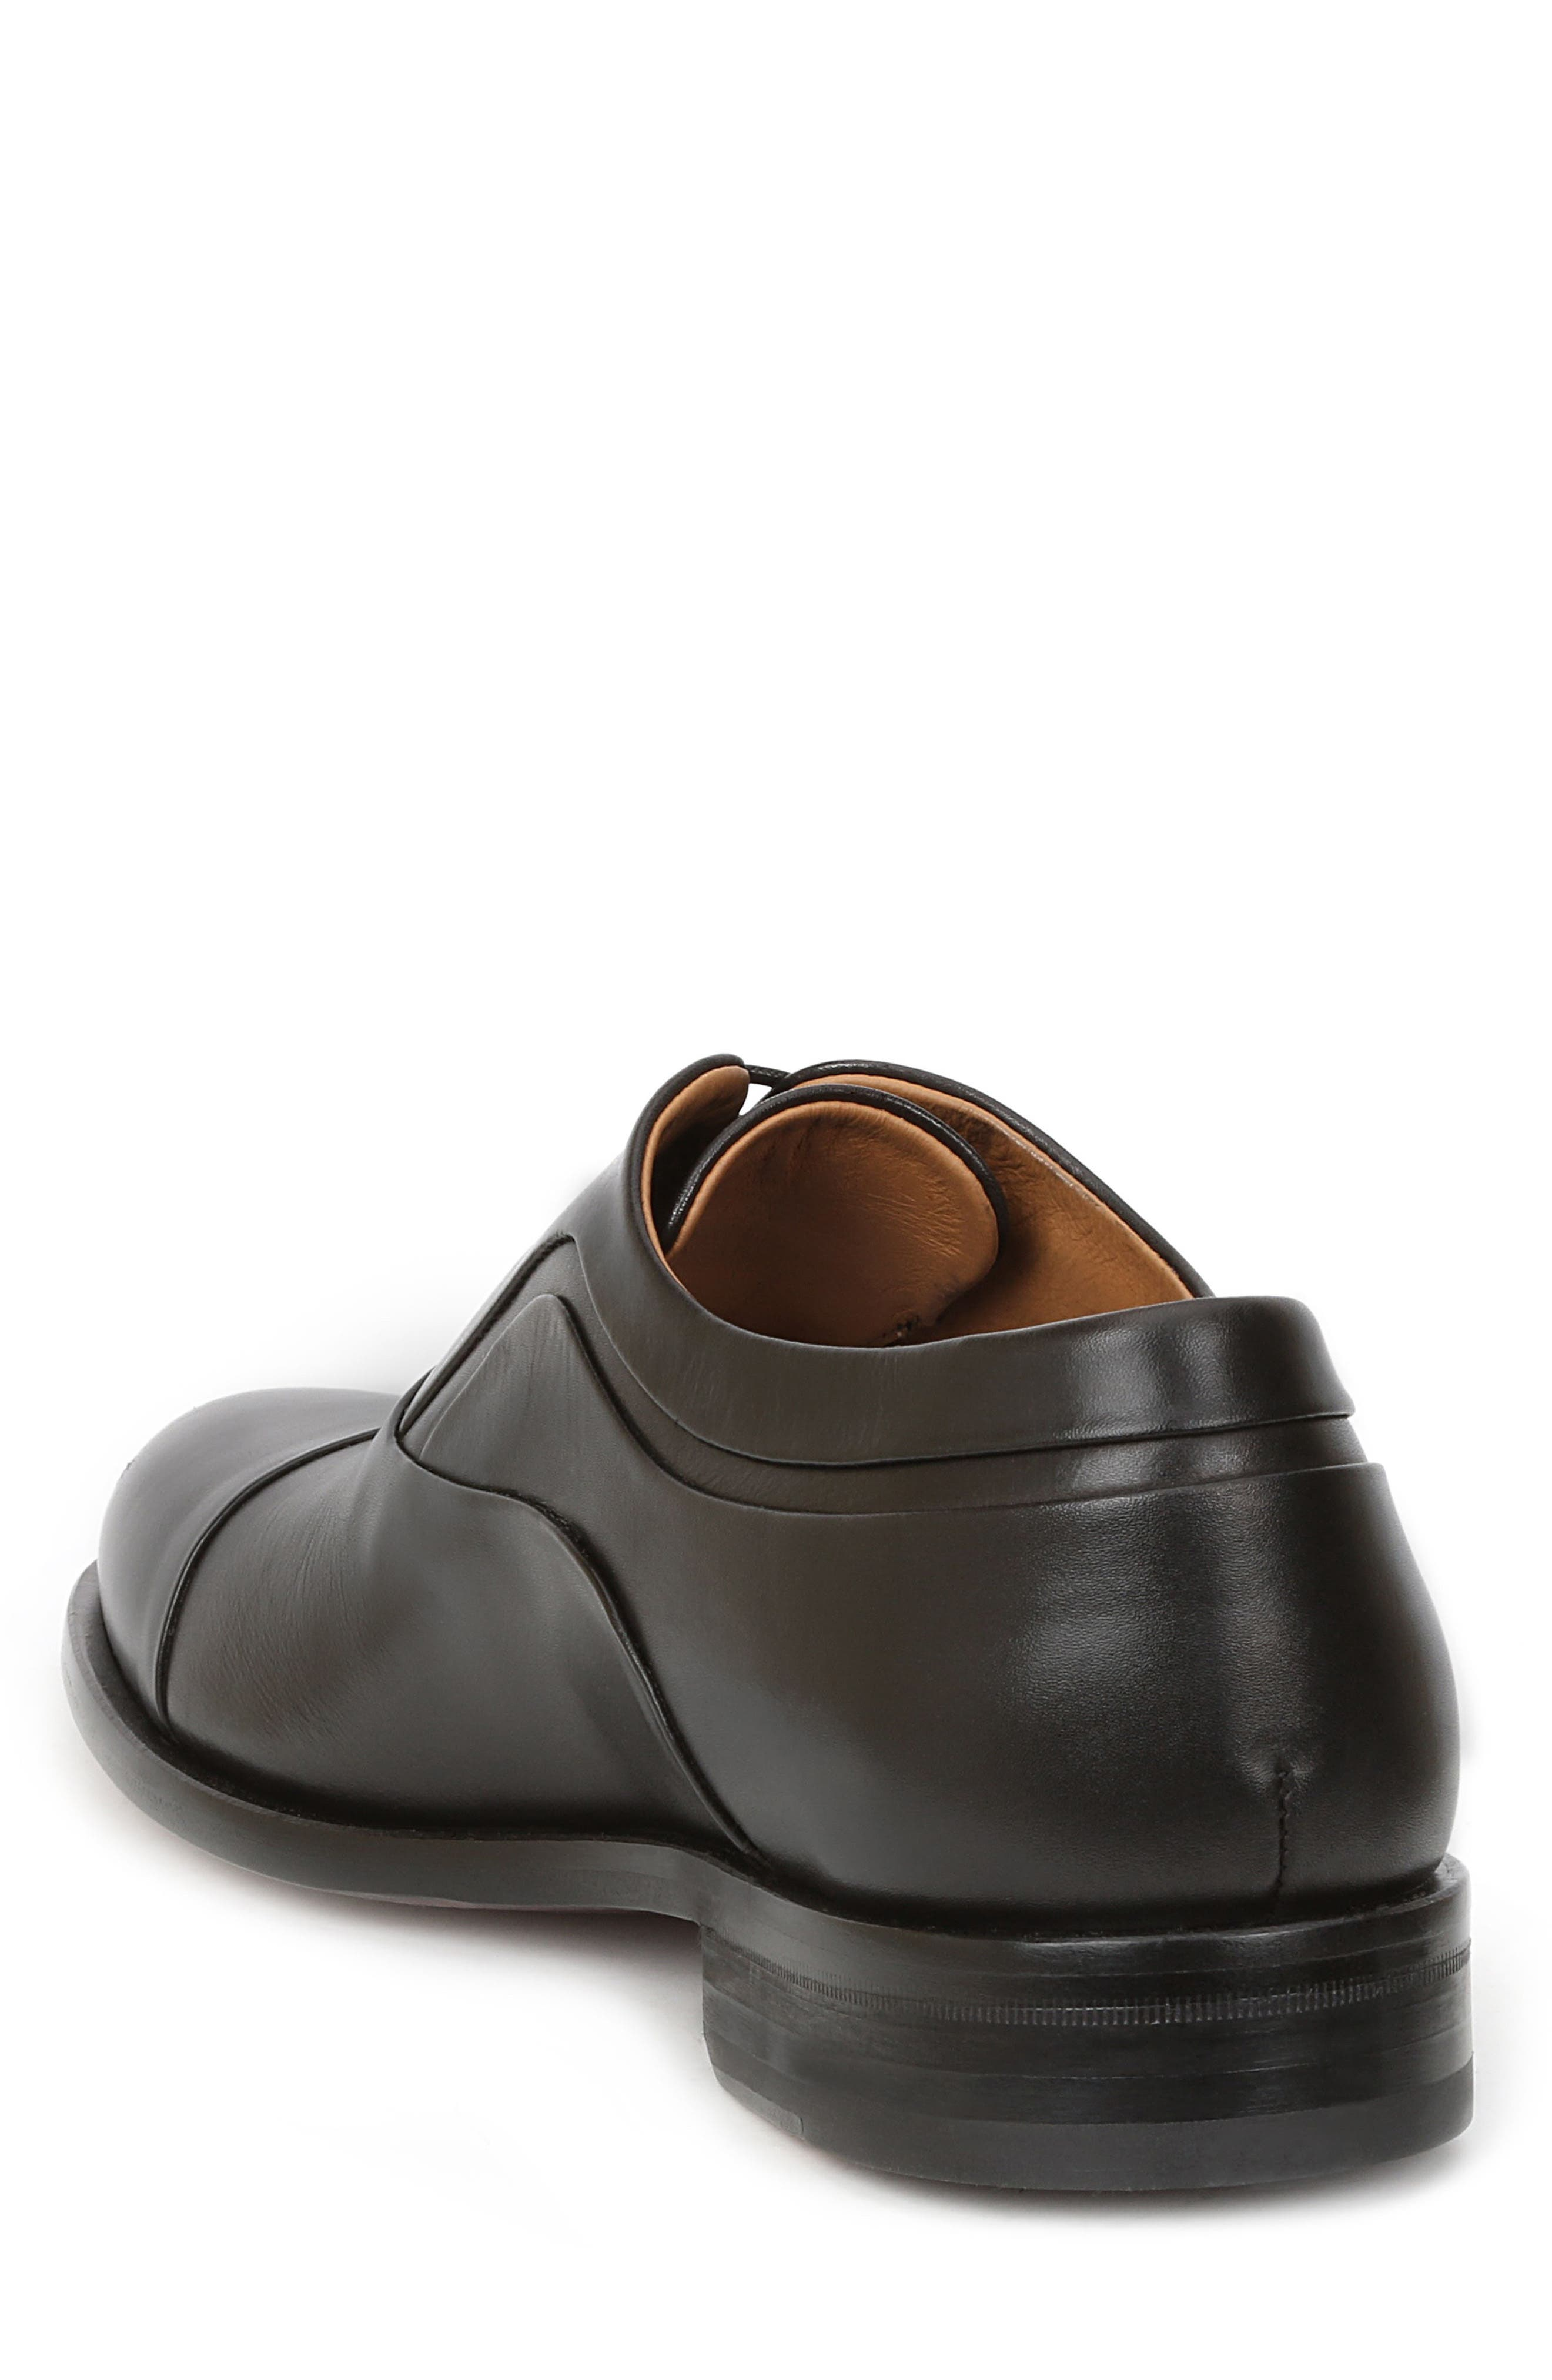 BRUNO MAGLI, Sassiolo Cap Toe Oxford, Alternate thumbnail 2, color, BLACK